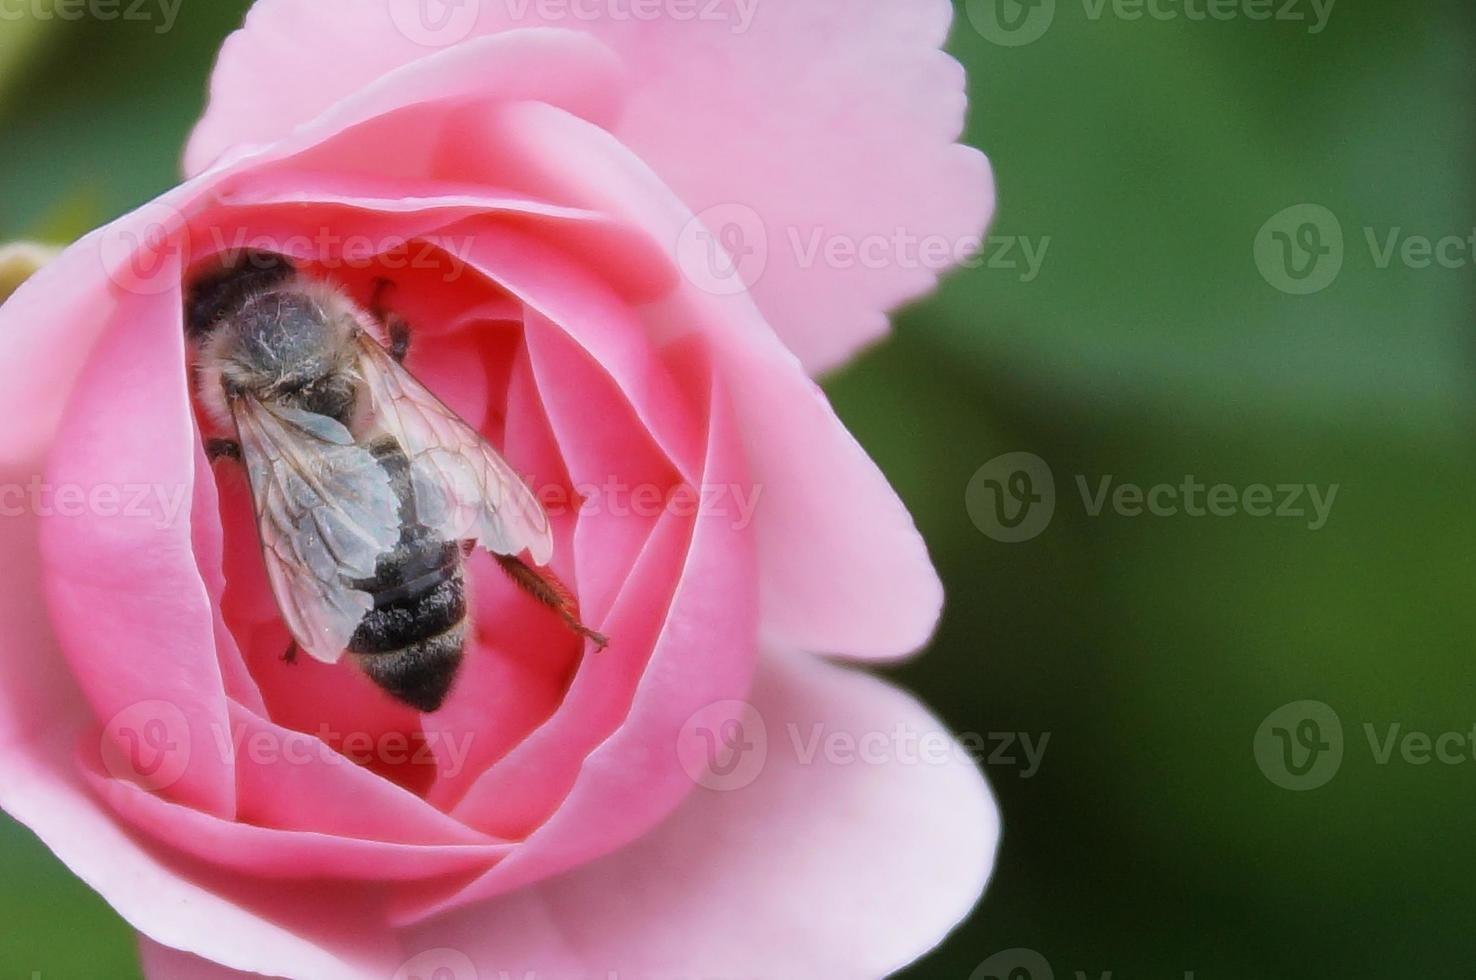 The Rose and the Bee... photo